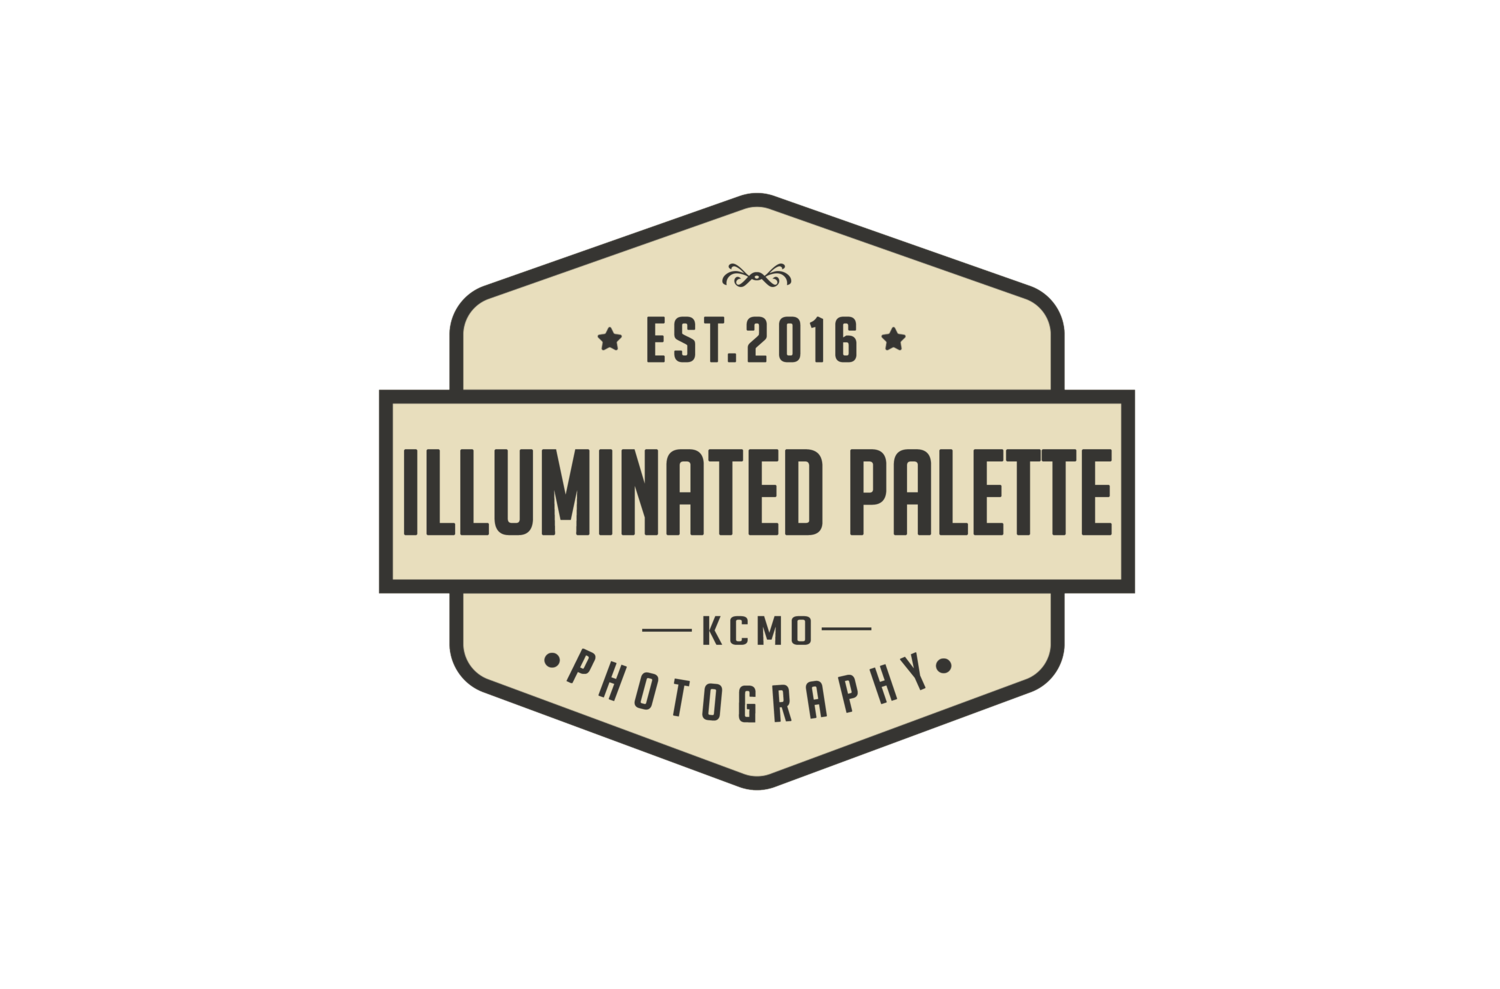 Illuminated Palette Photography